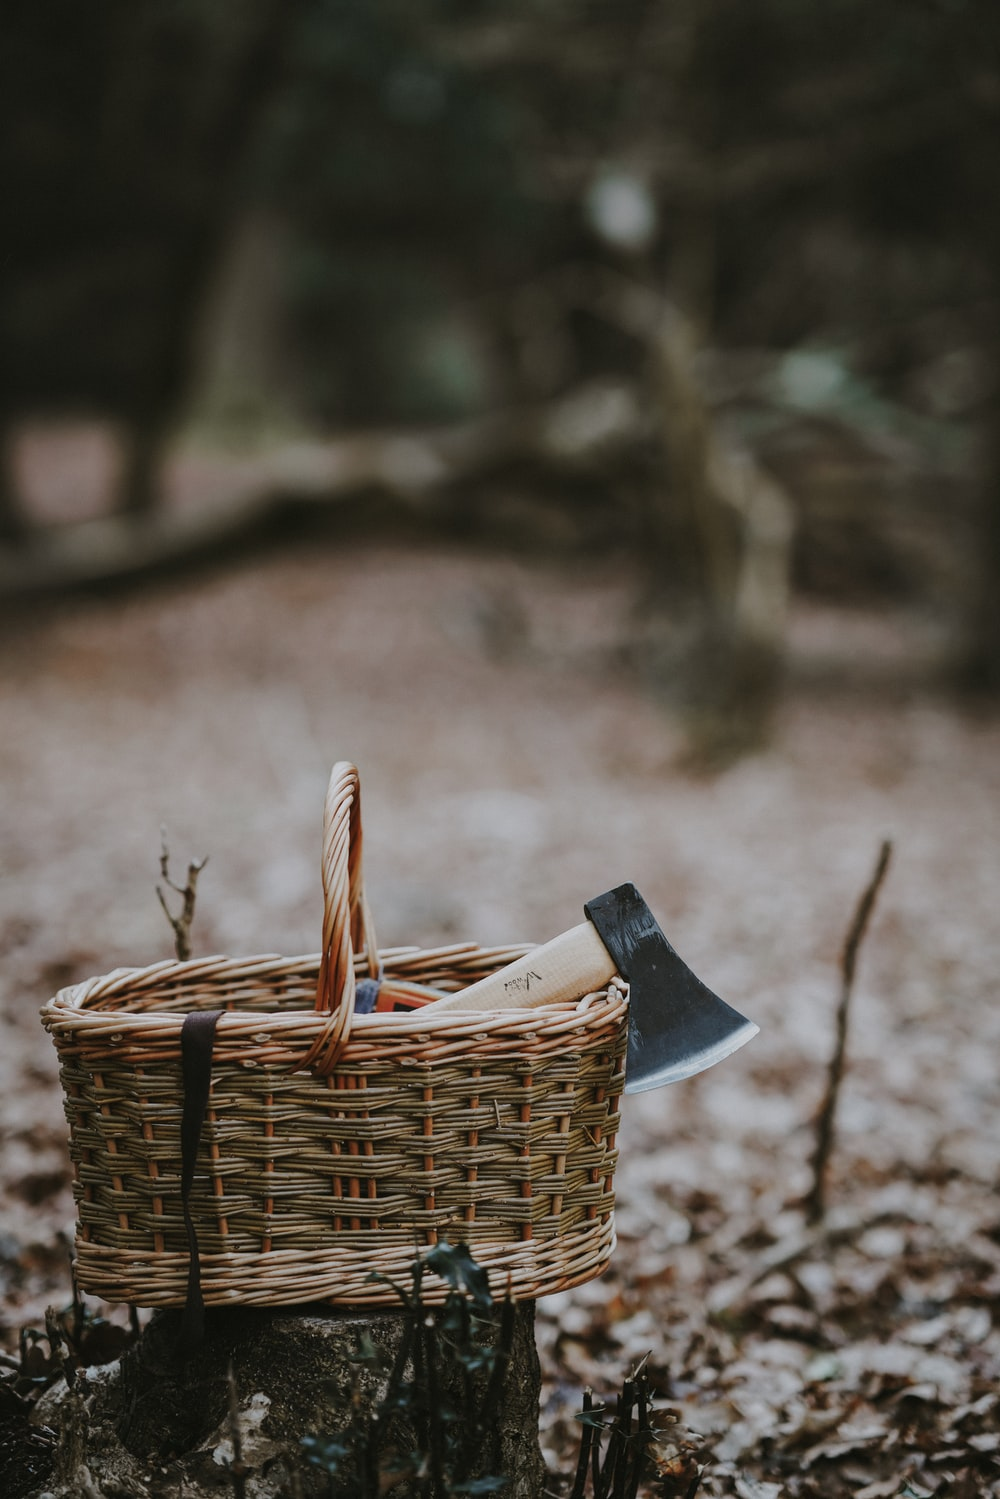 selective focus photo of brown wicker basket with axe inside